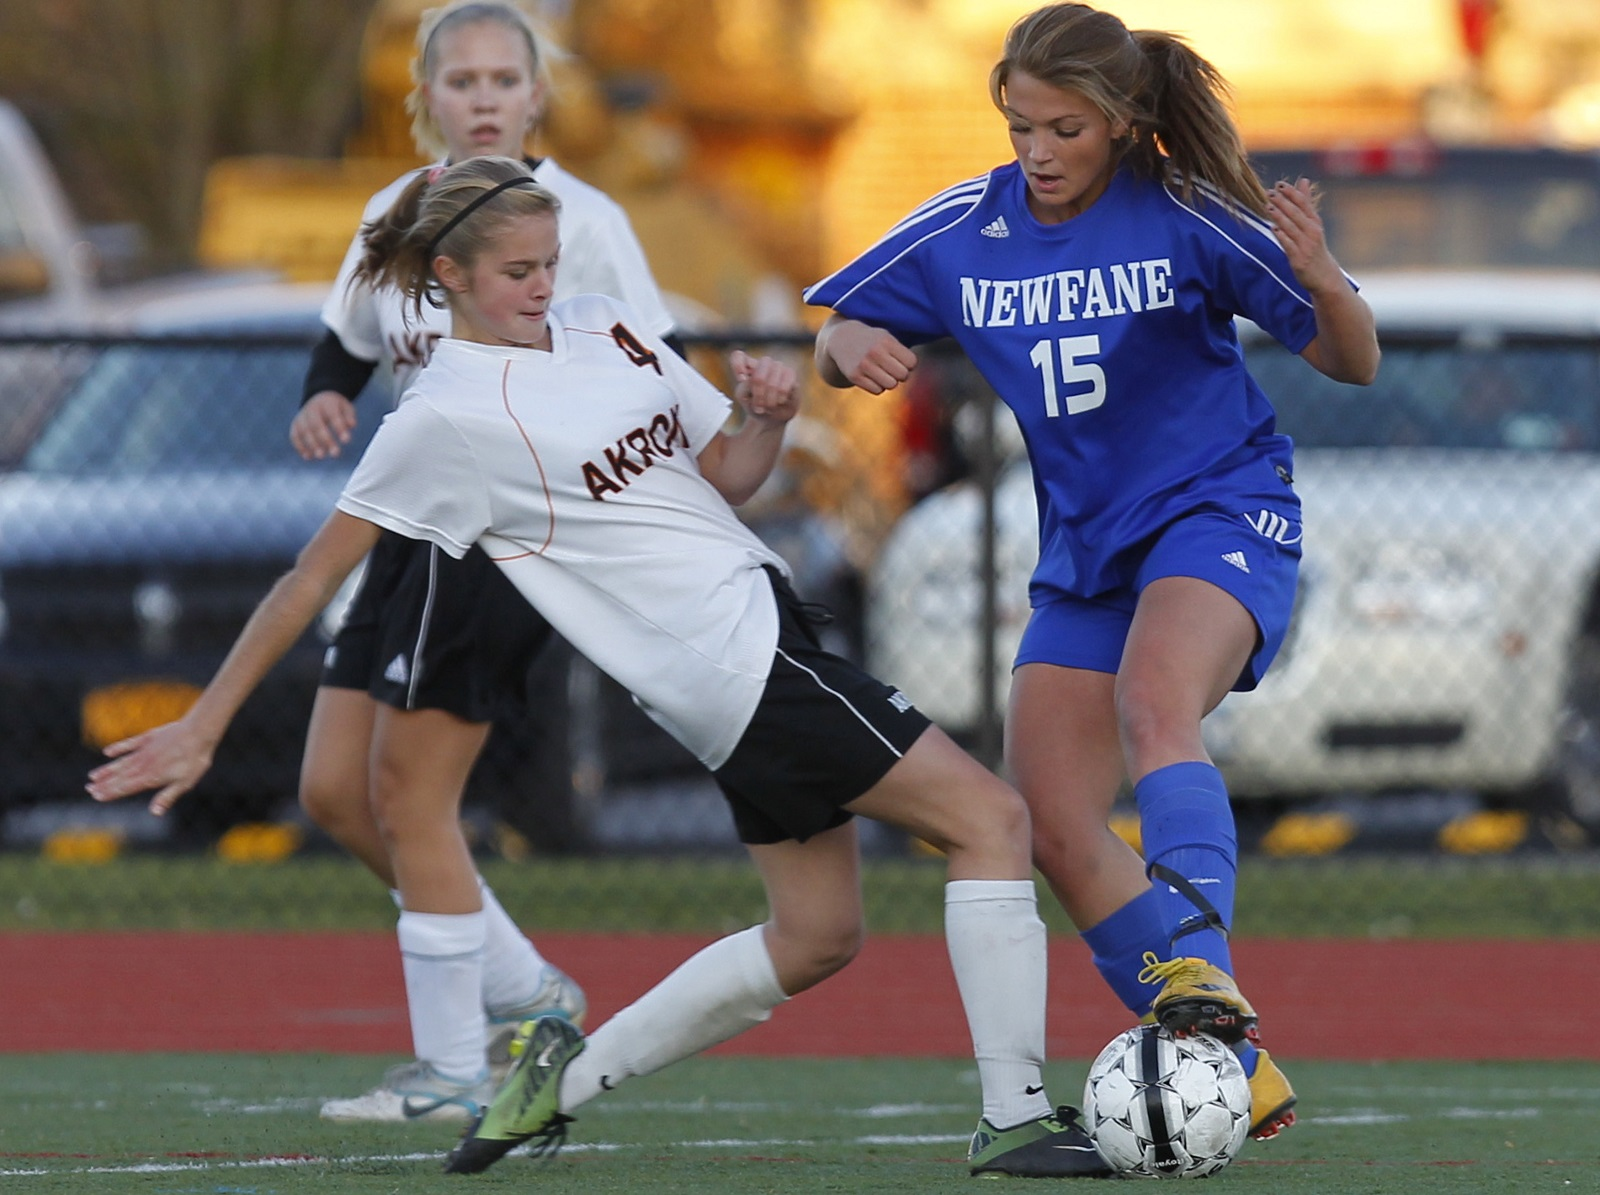 Newfane's Alexis Moreland, left, goes into a tackle in a 2011 playoff game. Moreland now plays at Fredonia. (John Hickey/Buffalo News file photo)